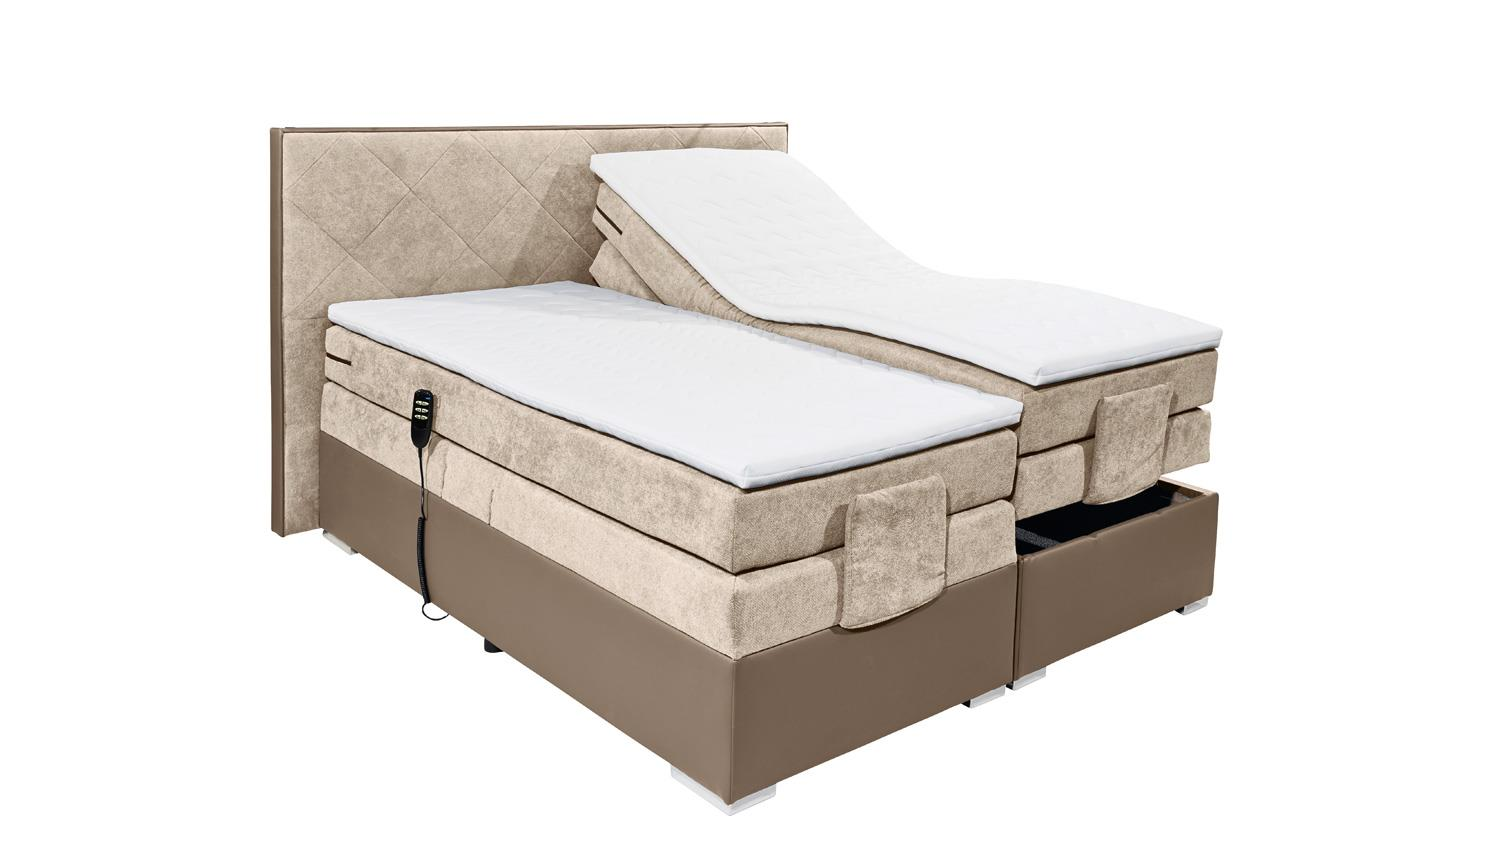 boxspringbett trenton 3 in taupe beige 7 zonen ttfk mit motor 180x200. Black Bedroom Furniture Sets. Home Design Ideas